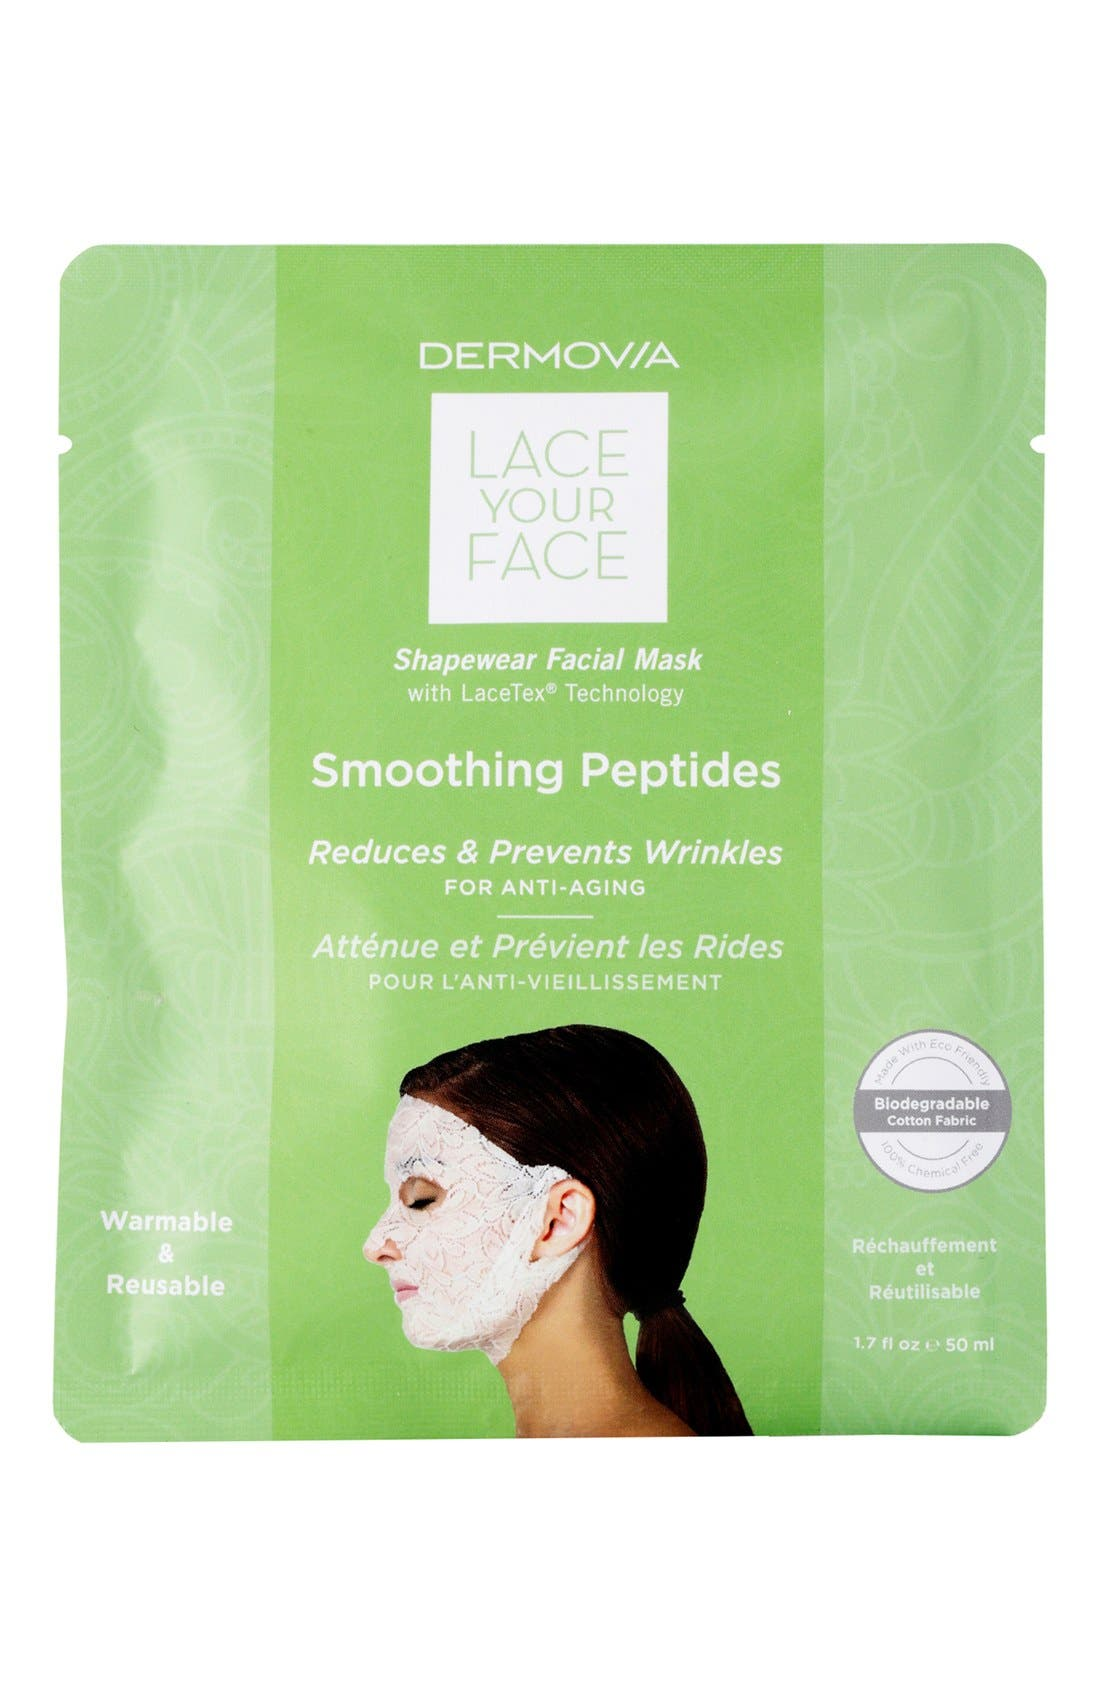 Dermovia Lace Your Face Smoothing Peptides Compression Facial Mask